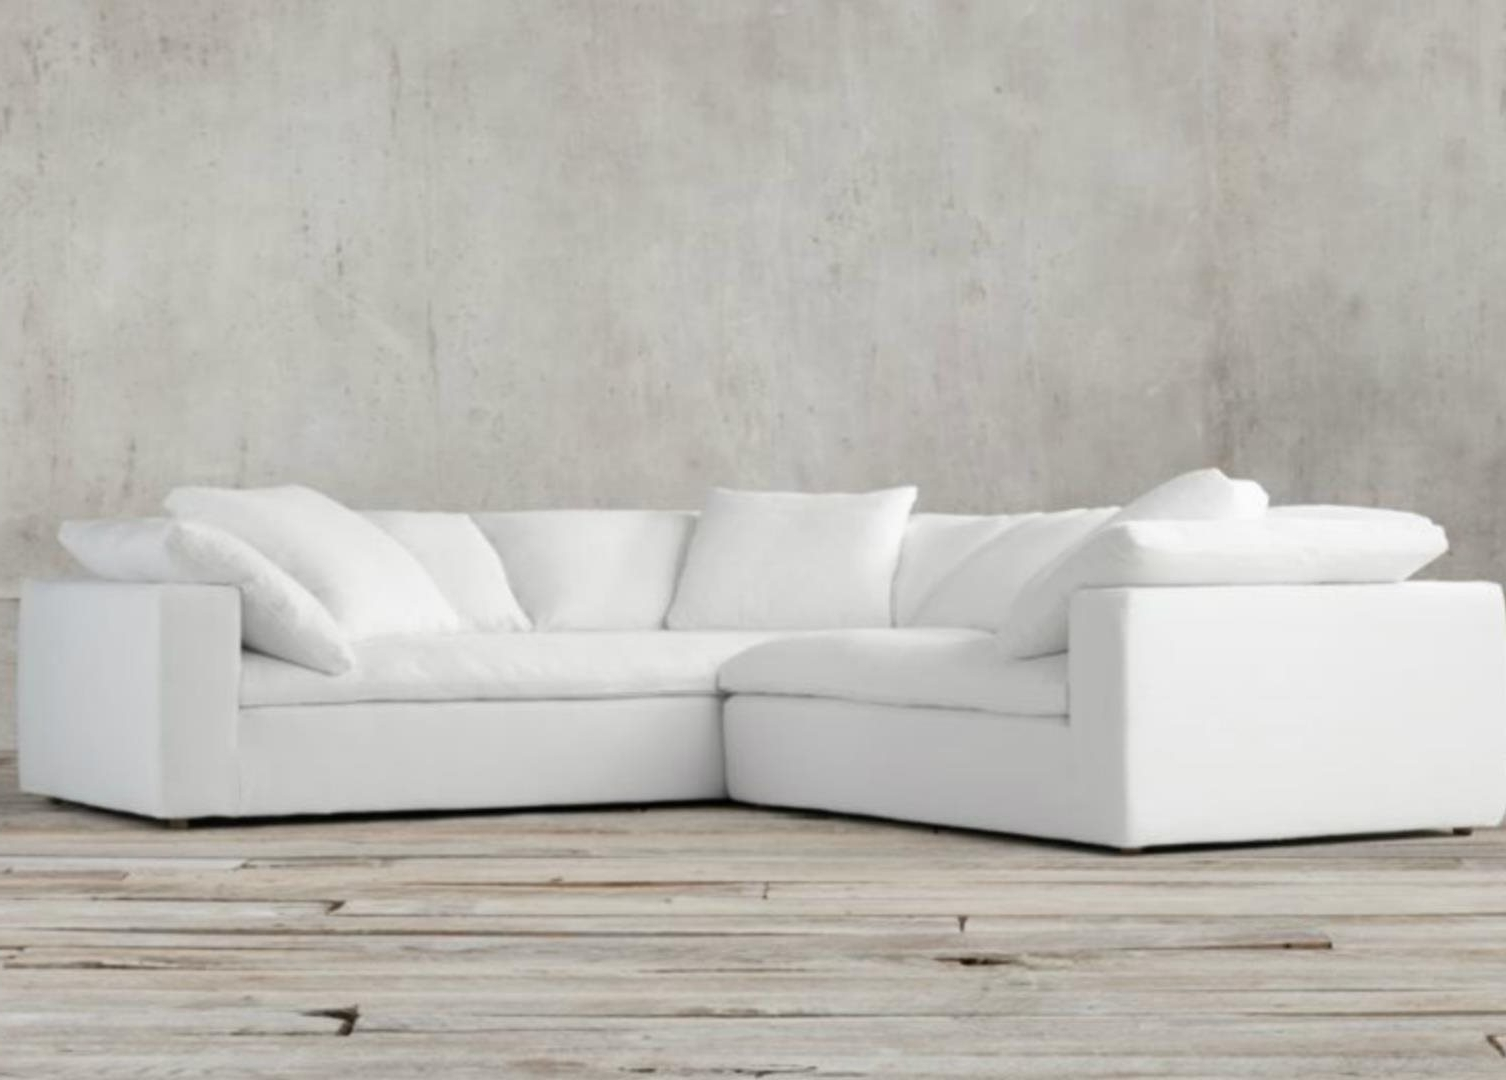 Joining Hardware Sectional Sofas Pertaining To Latest Restoration Hardware Cloud Modular Slipcovered Sofa: For Sale In (View 8 of 15)